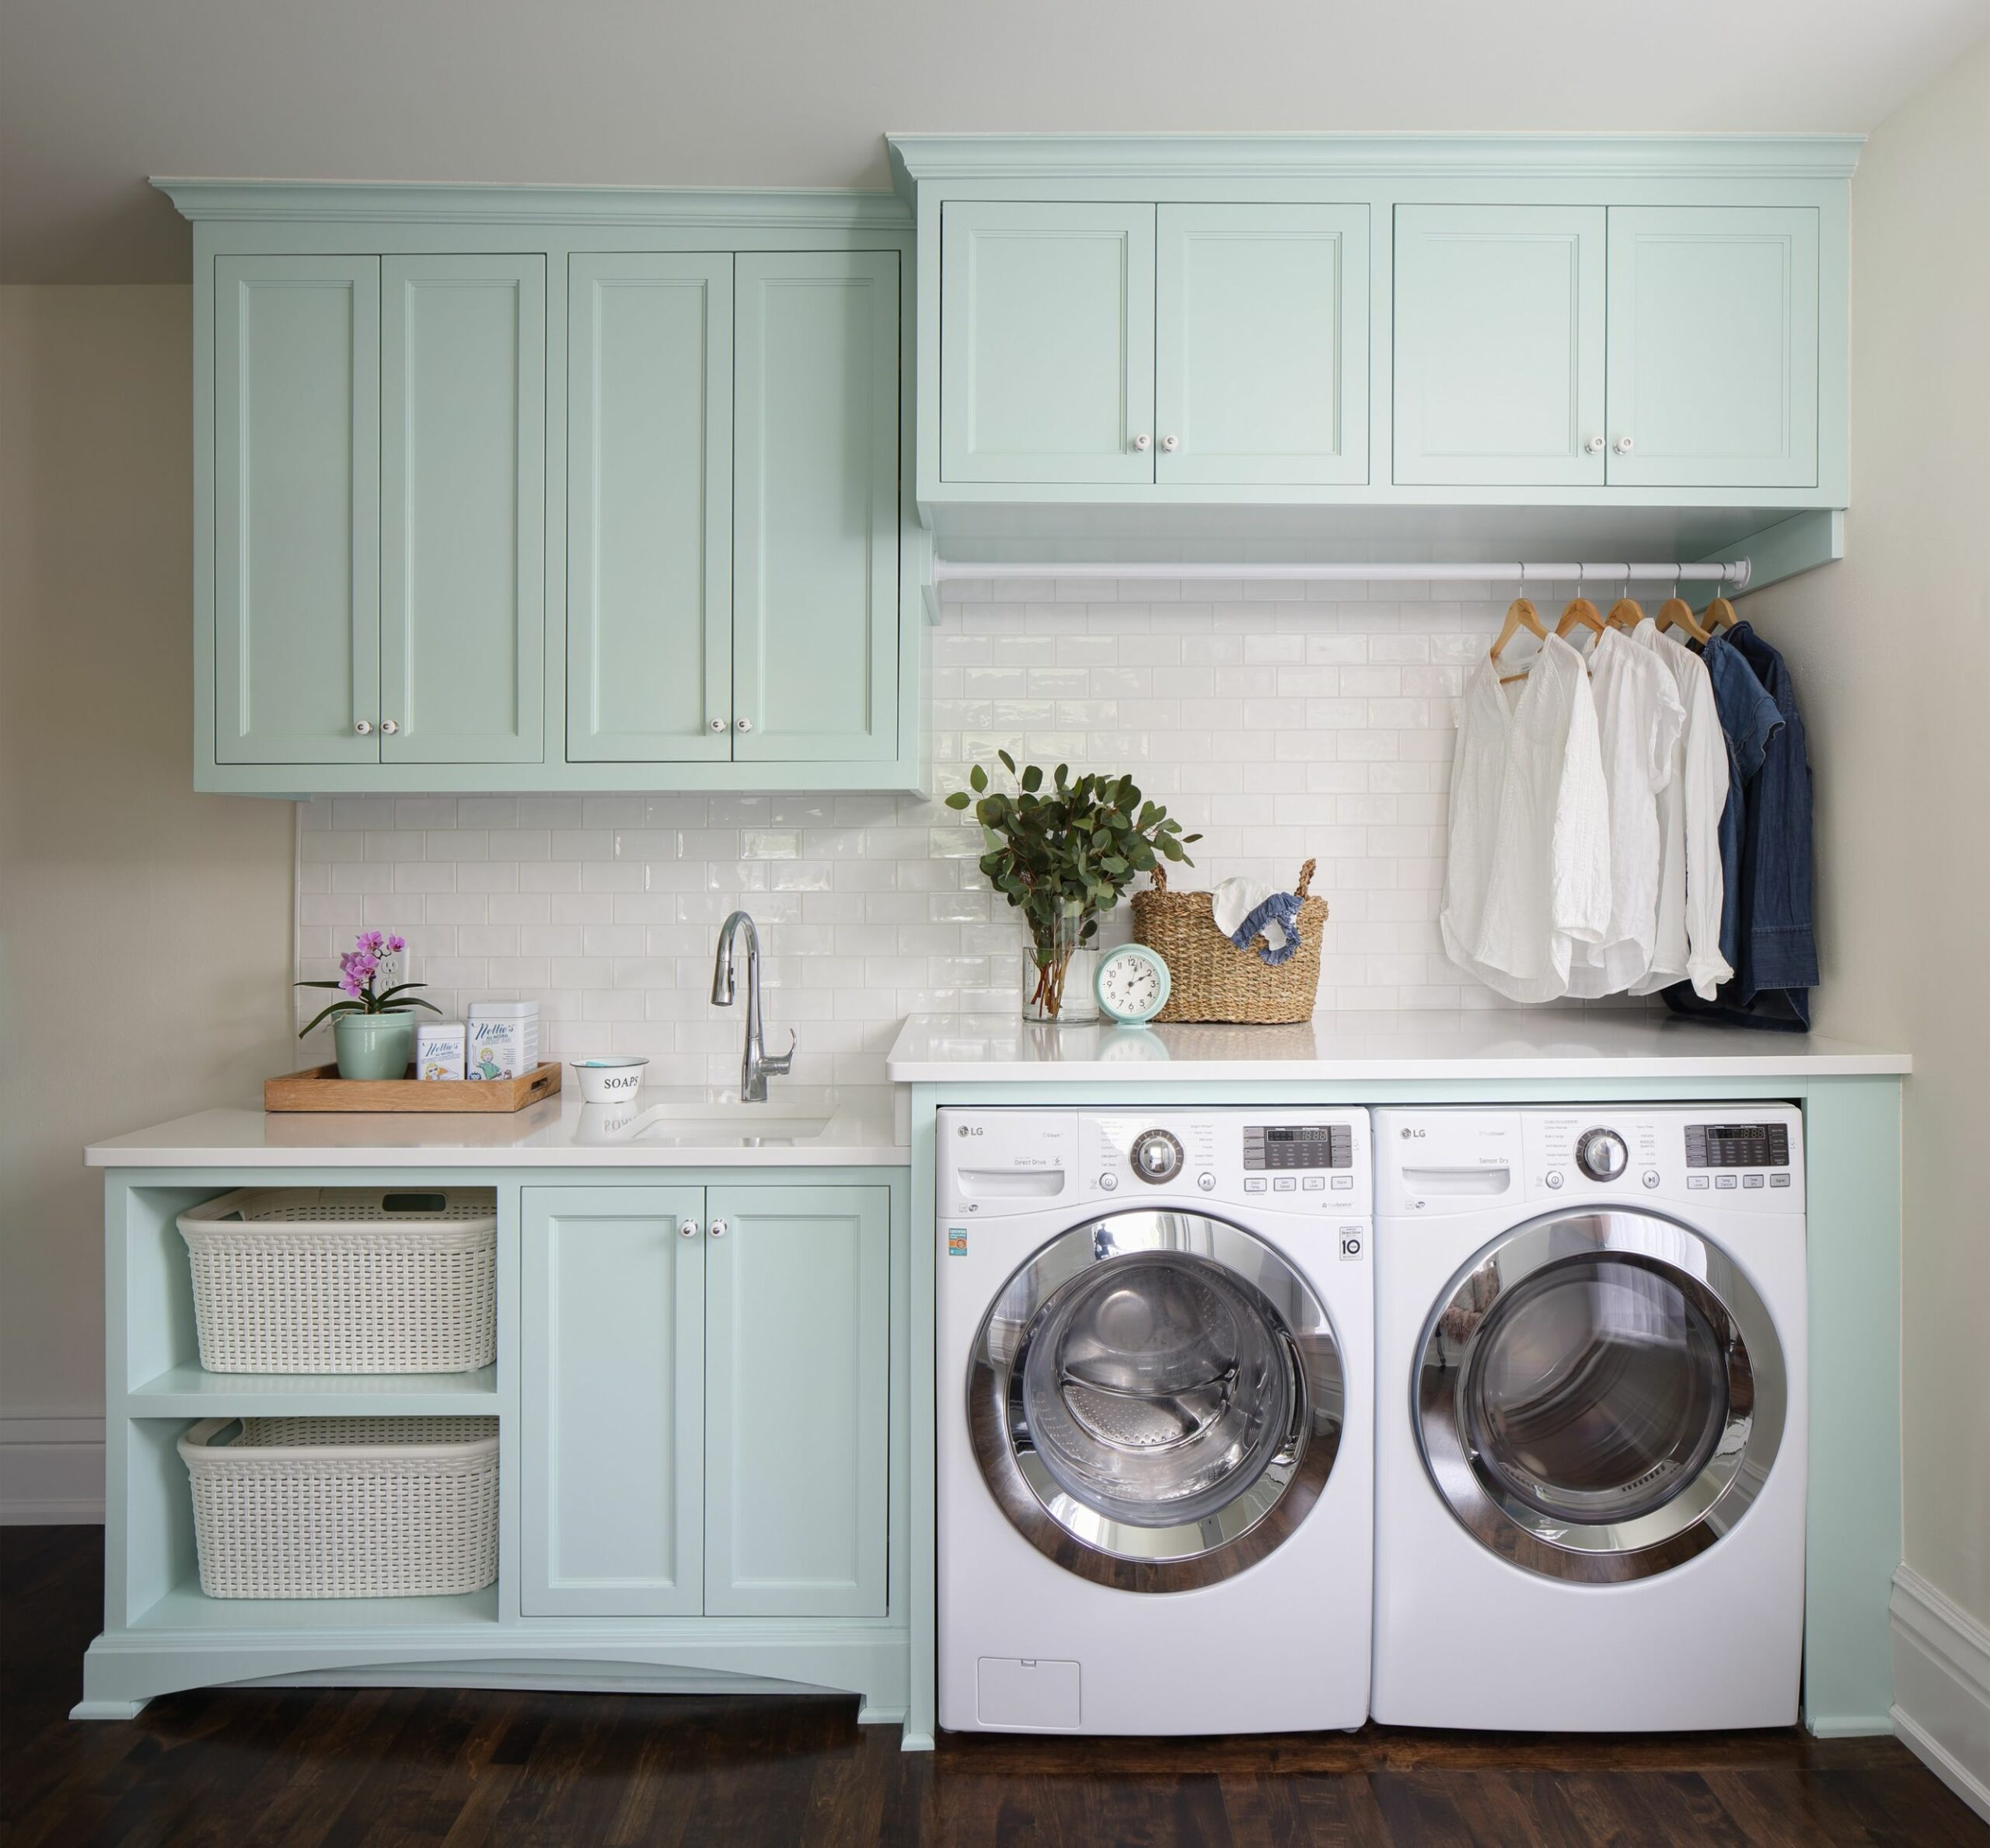 12 Beautiful Laundry Room Pictures & Ideas | Houzz - laundry room ideas pictures